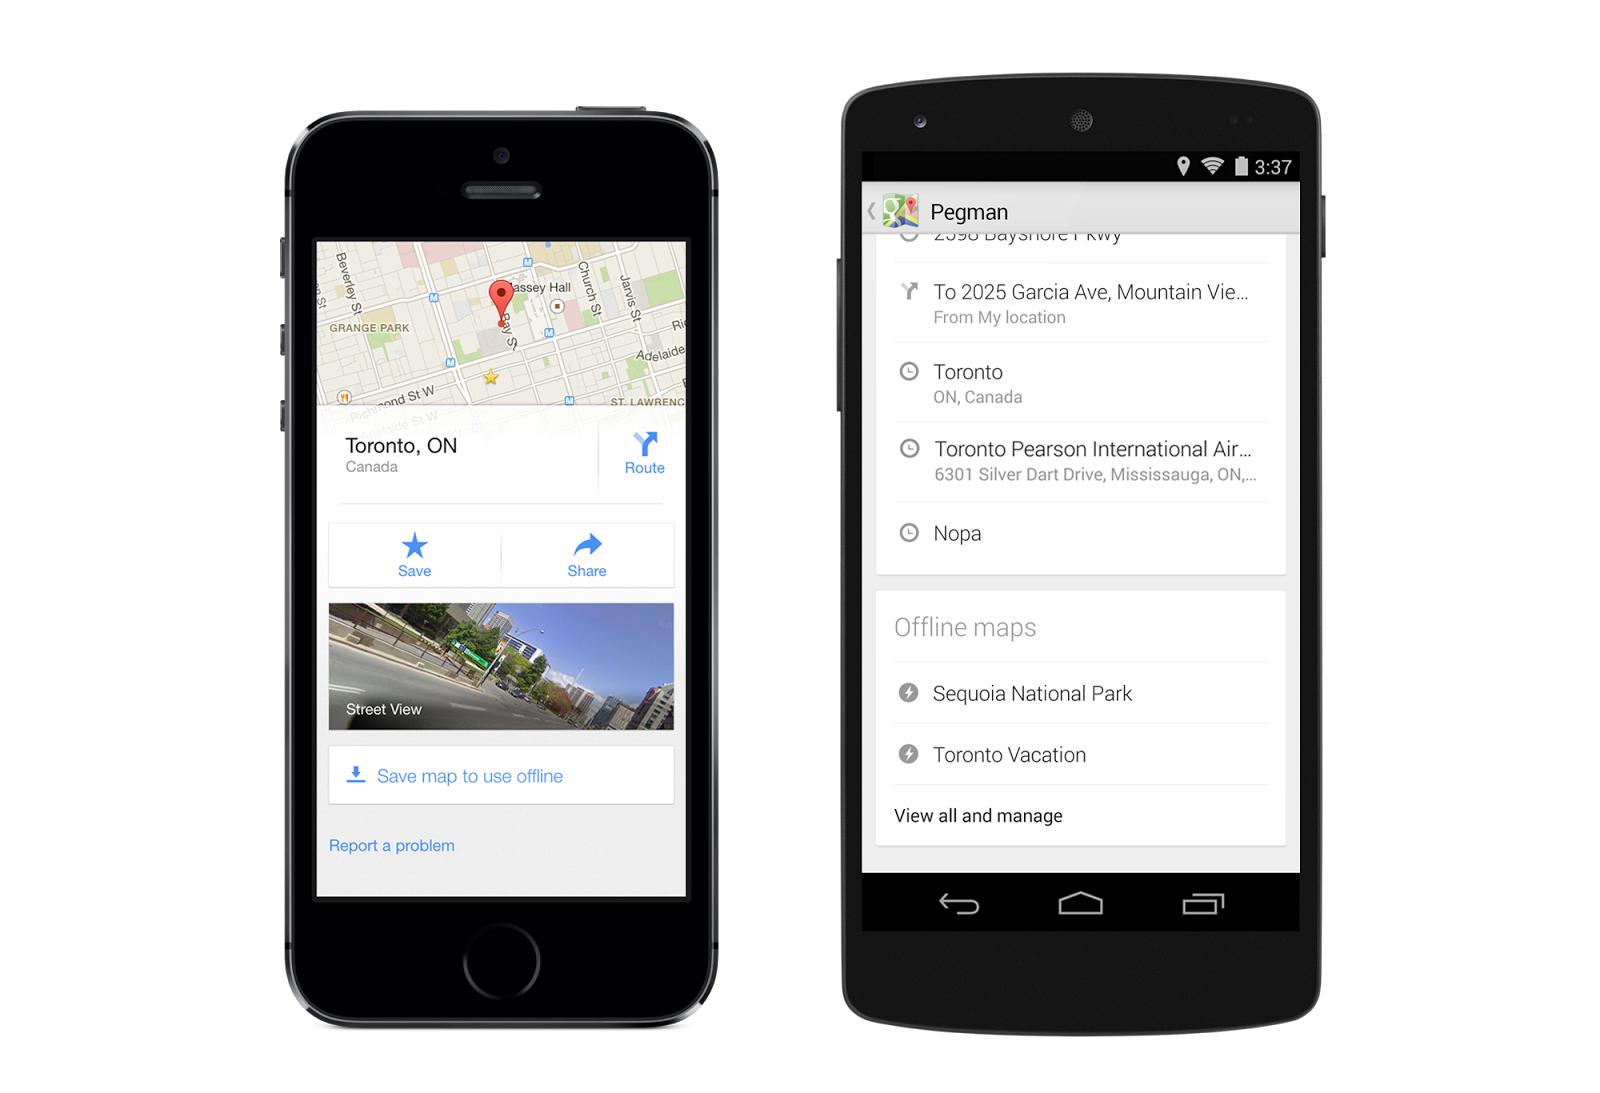 Google Maps for iOS and Android gets Uber Transit Option